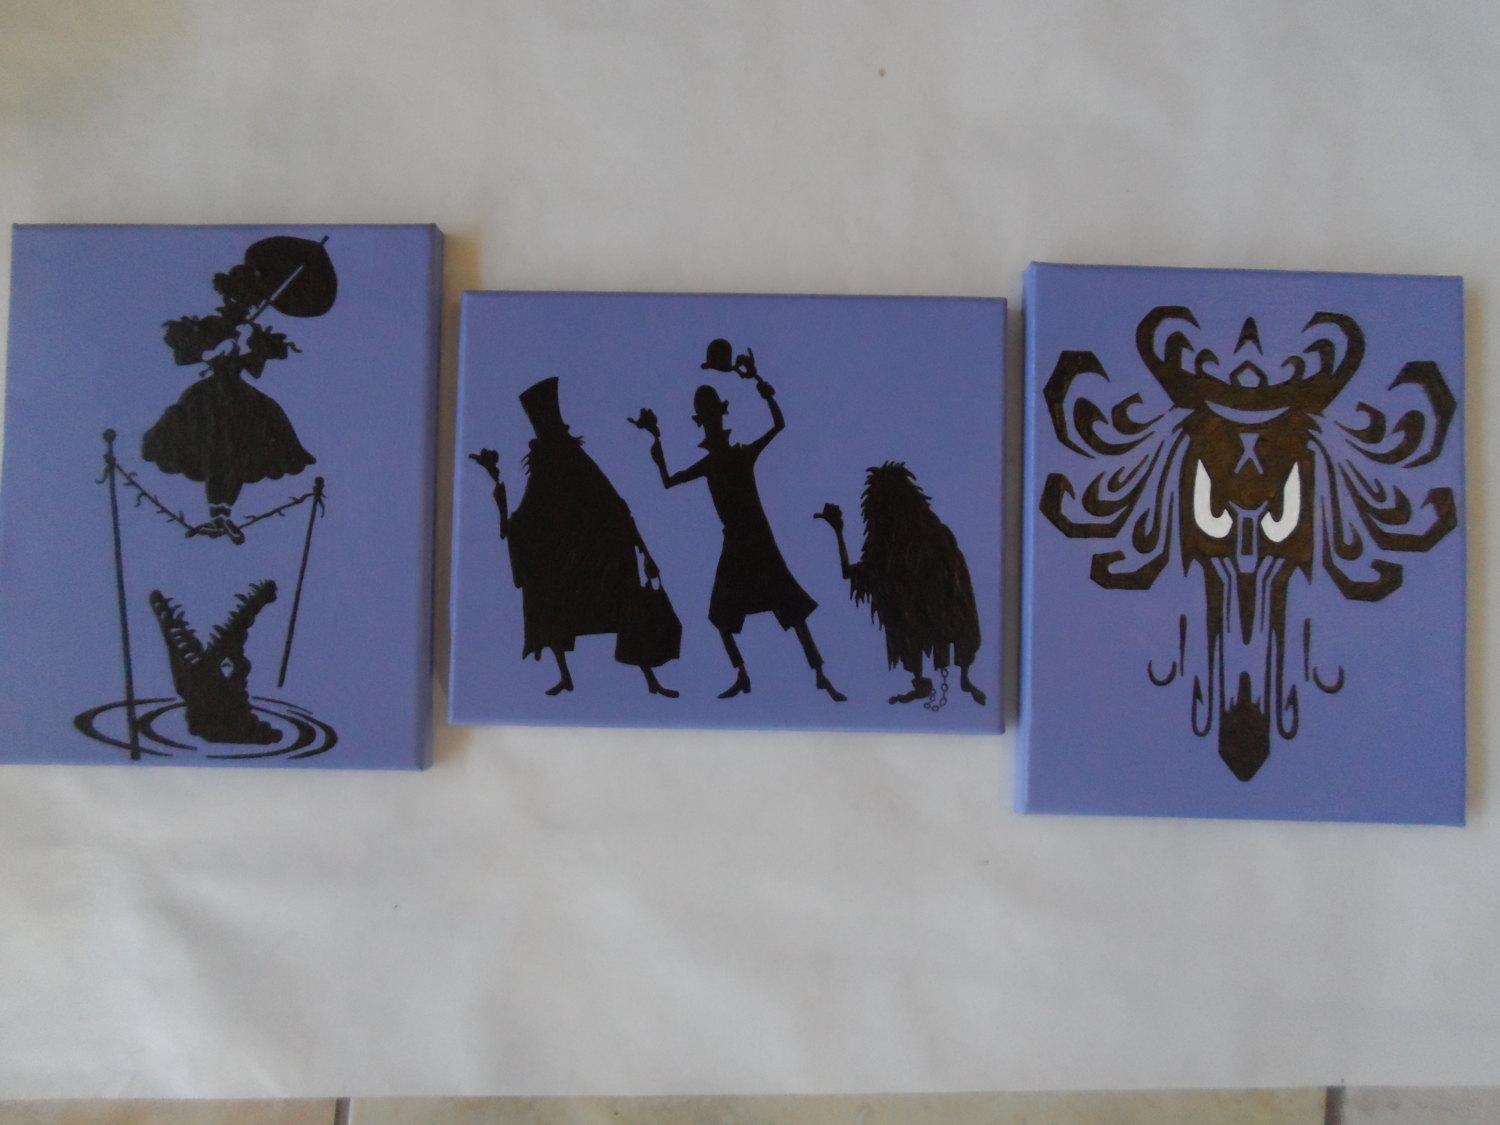 Haunted Mansion Hand Painted Canvas / Wall Art / Set Of 3 Throughout Disney Canvas Wall Art (View 10 of 20)